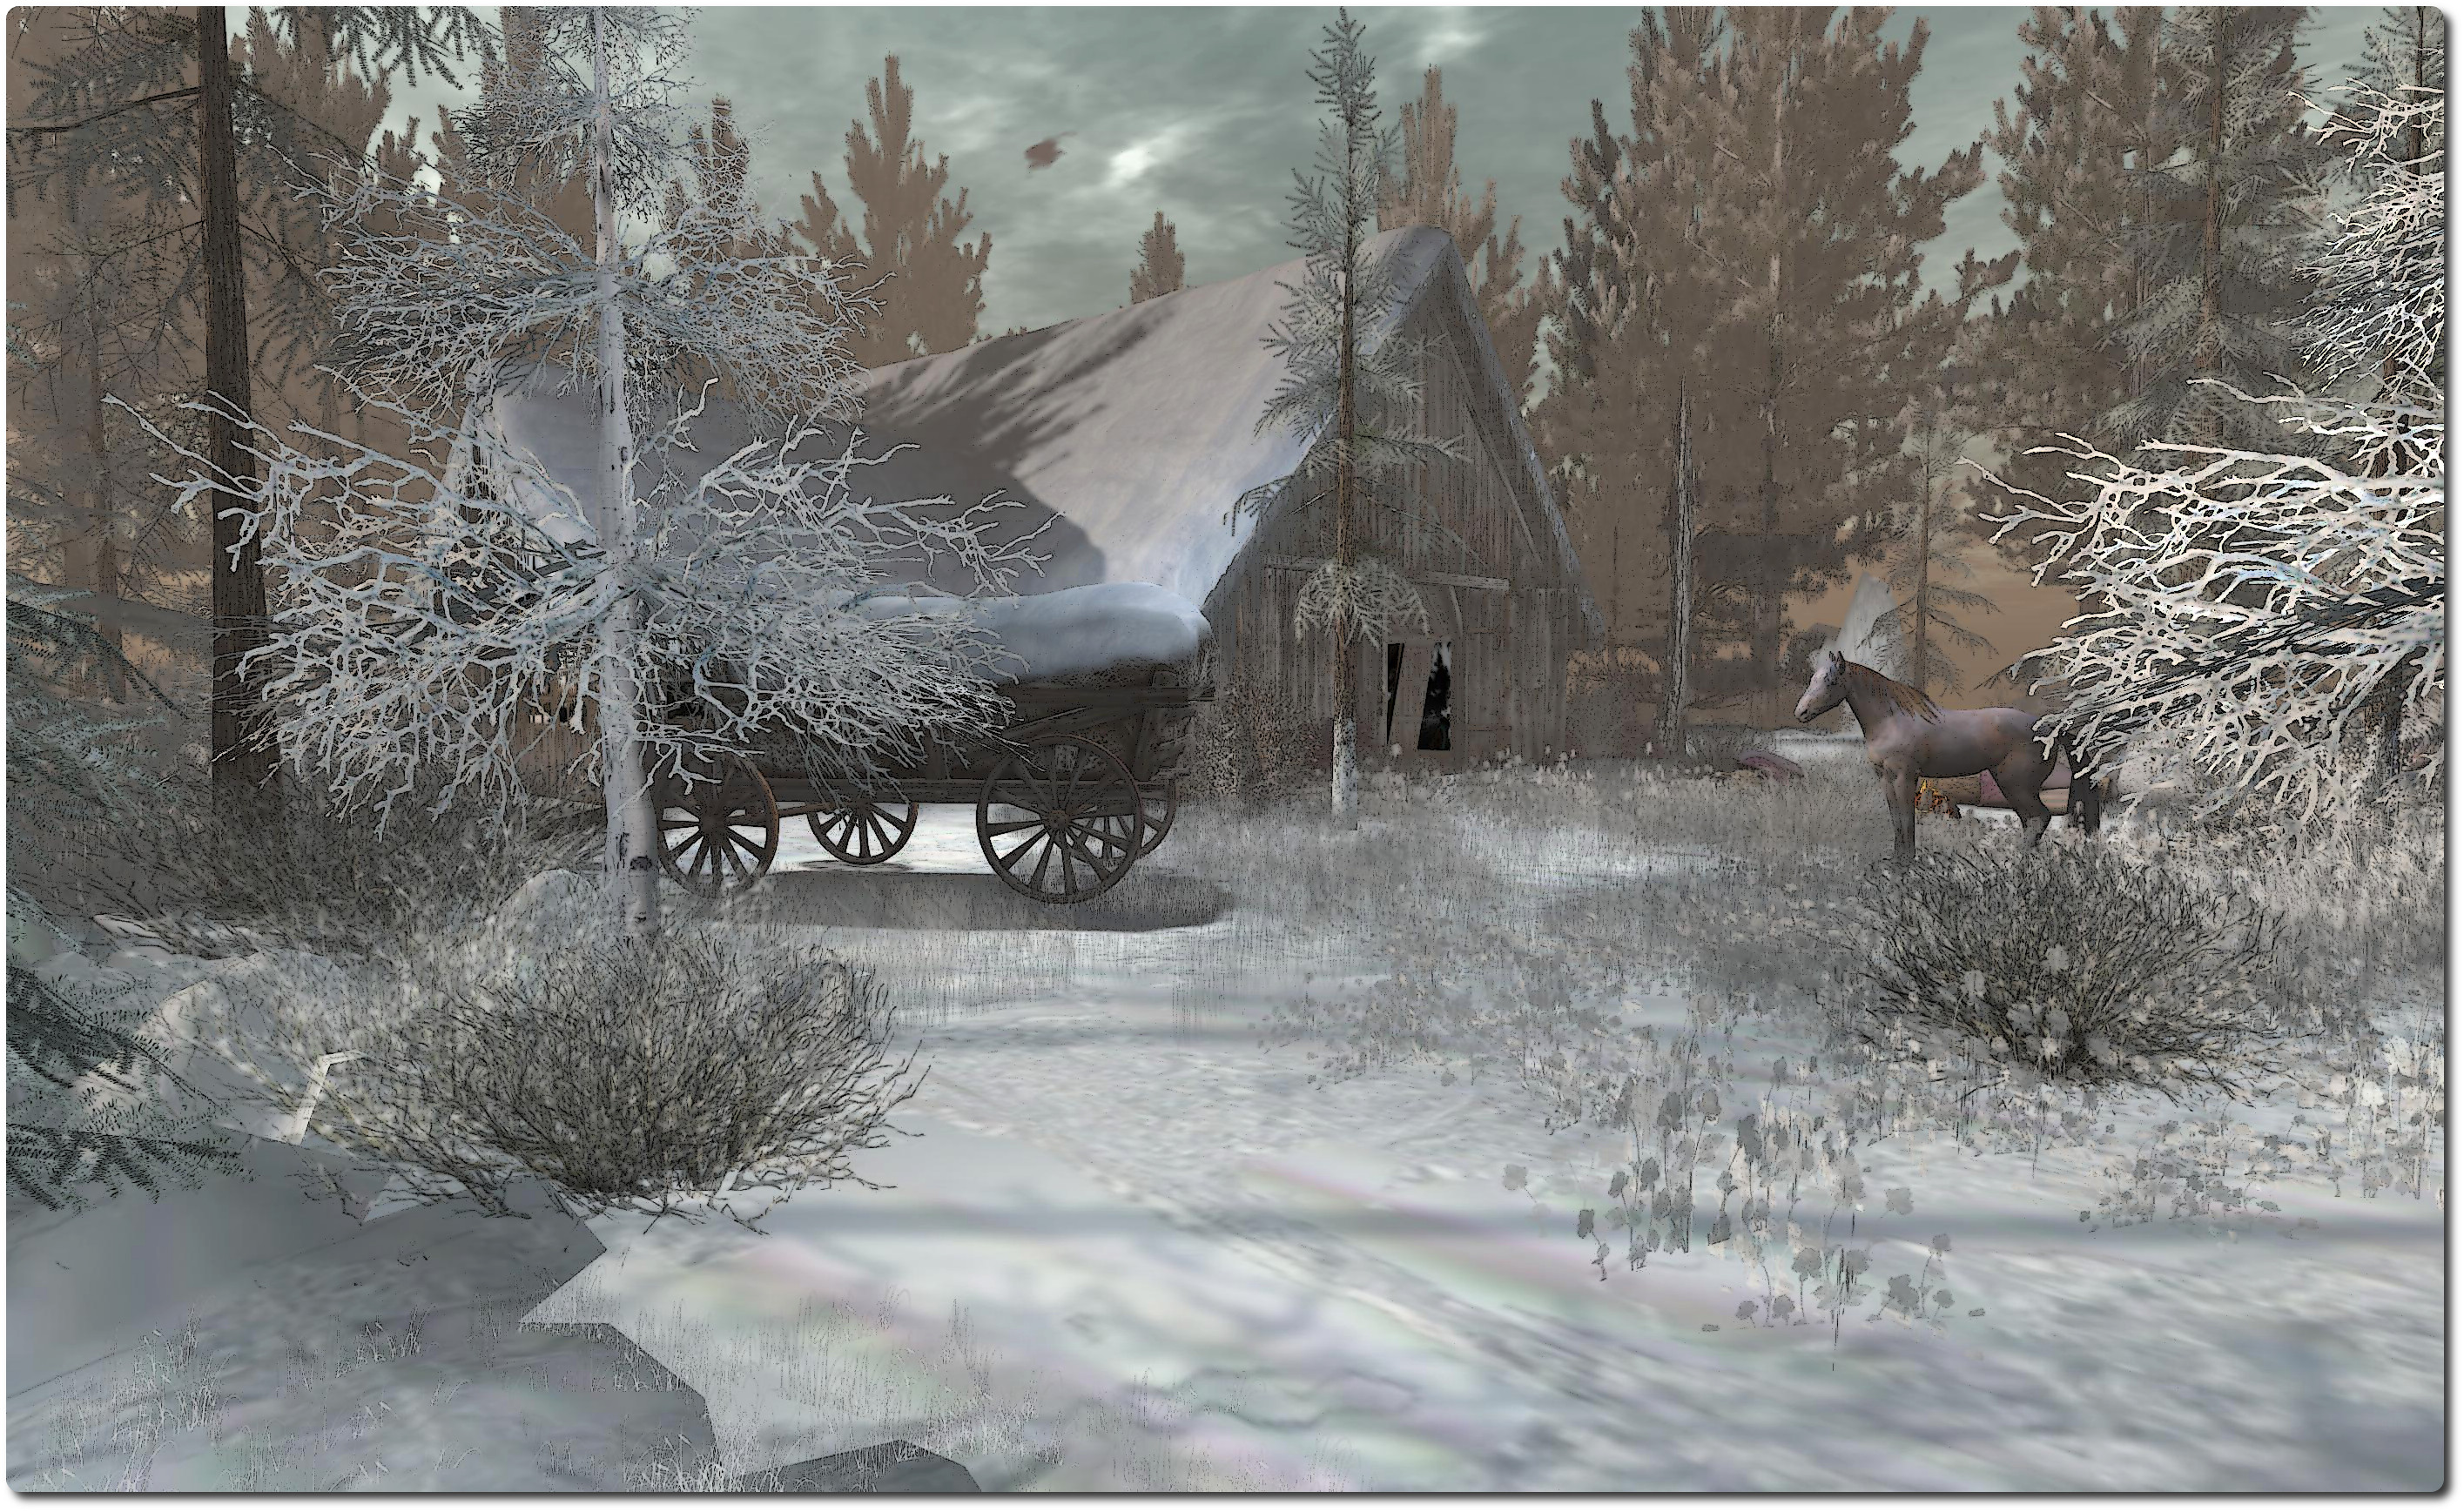 A winter scene from Slightly Twisted, December 2013